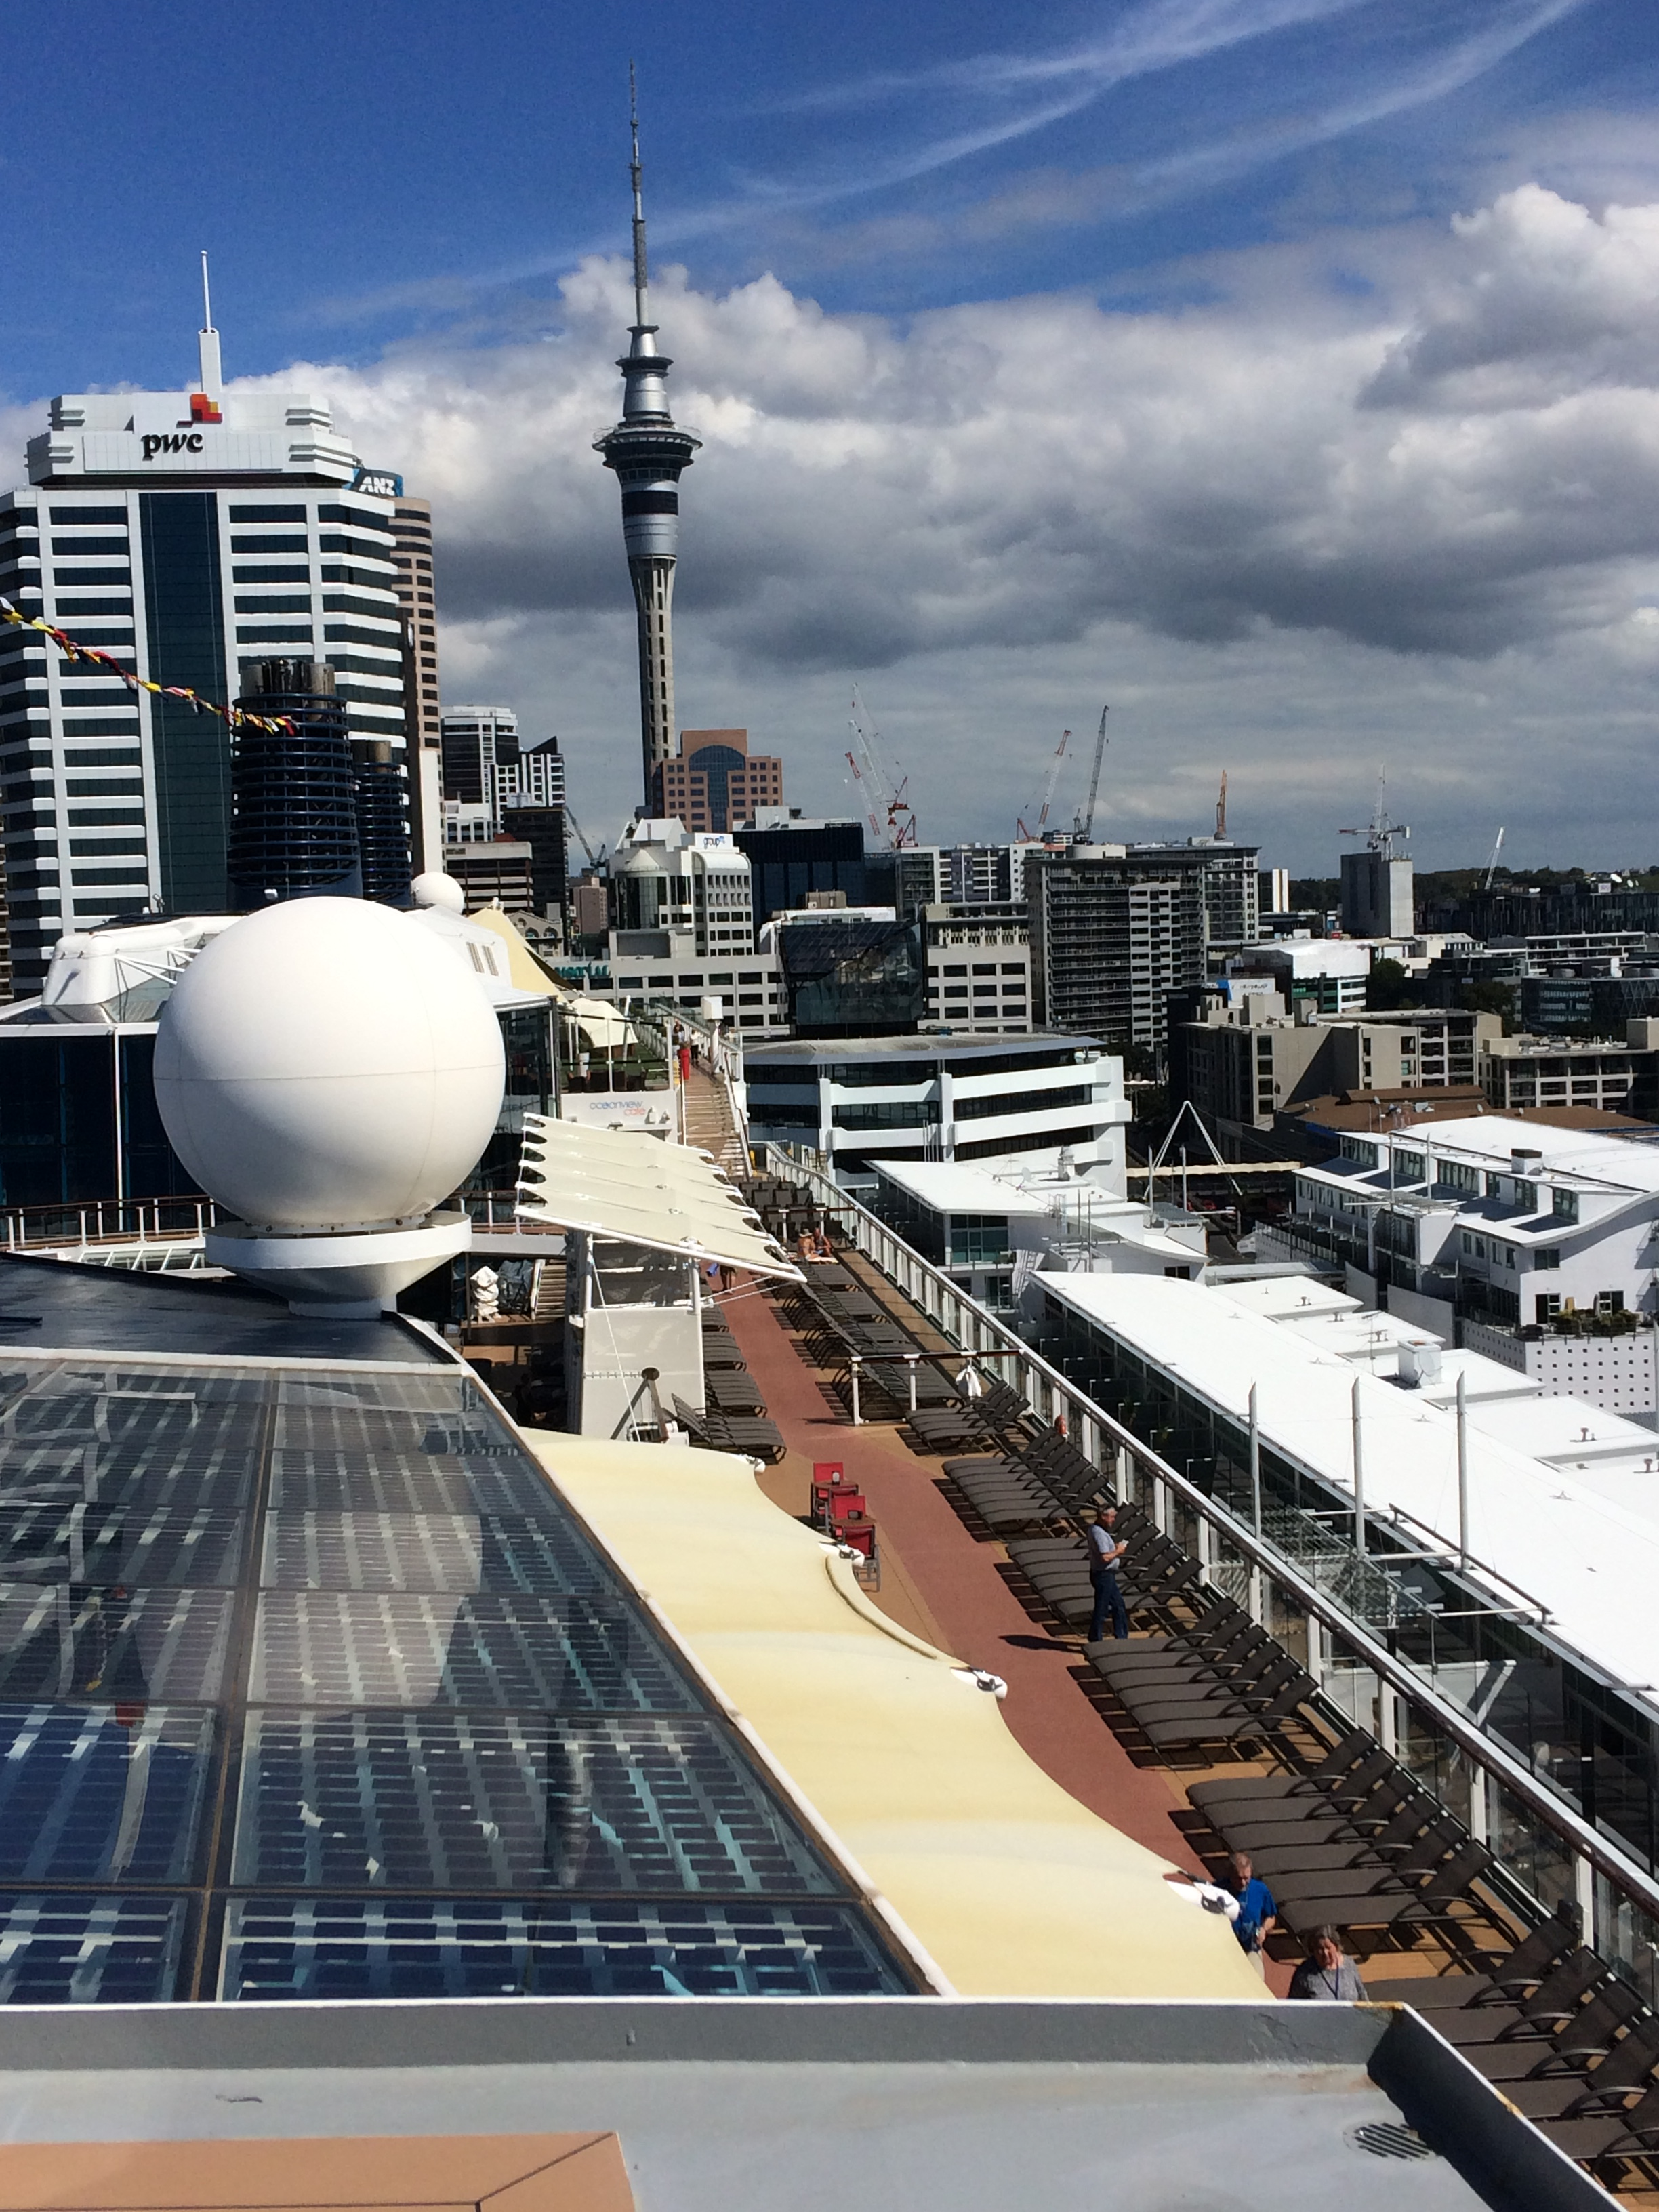 View of solar panels on the Celebrity Solstice cruise ship in March, 2019. Click to view larger version